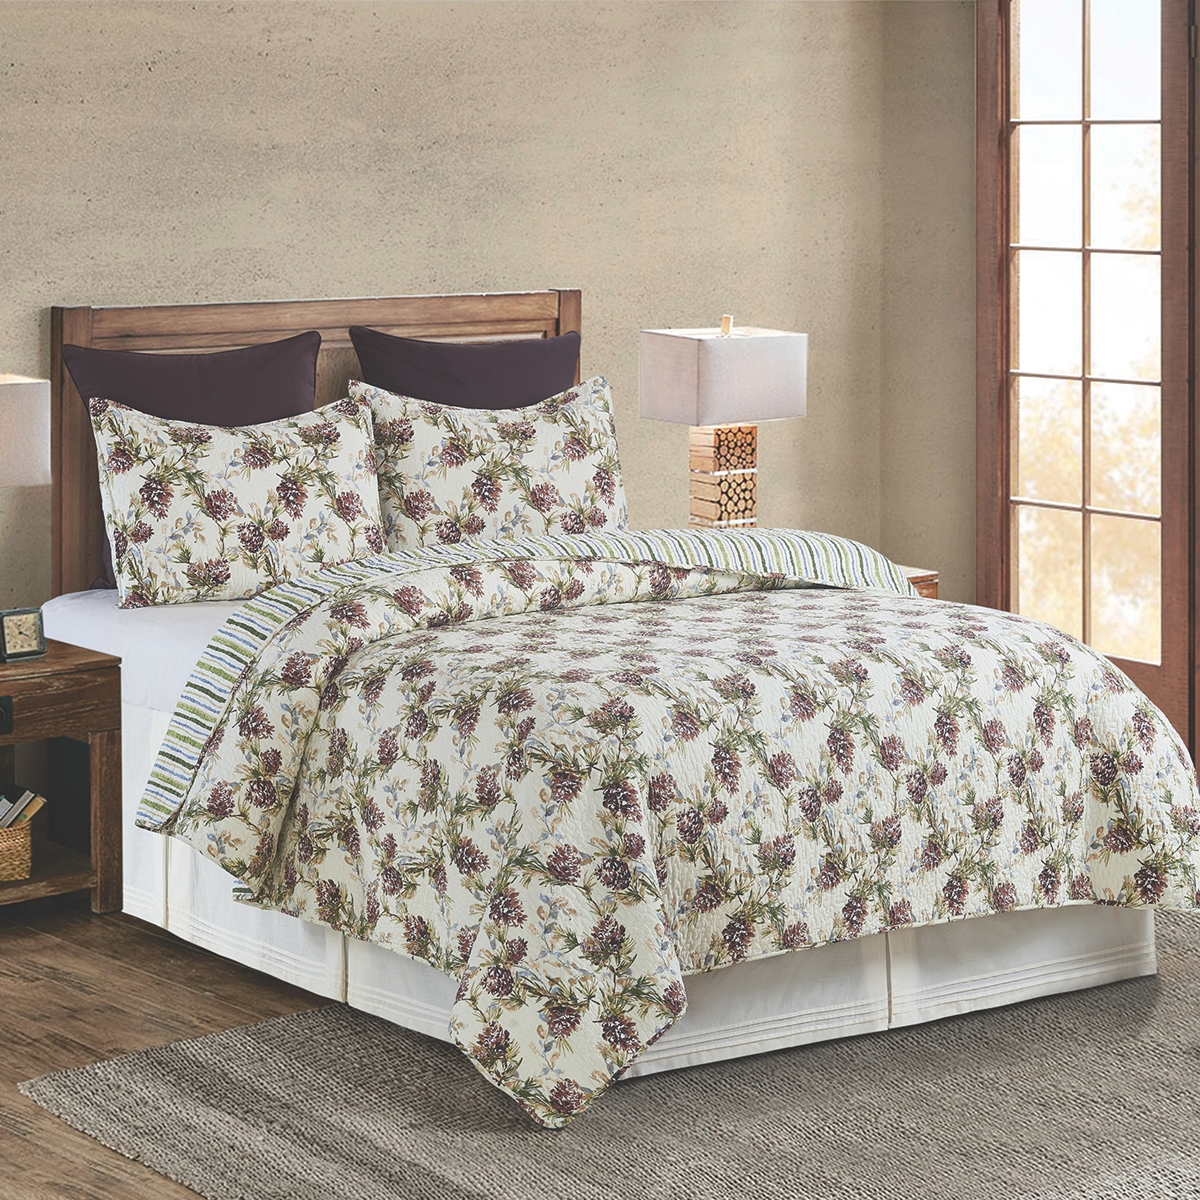 Cooper Pines Quilted Bedding Set